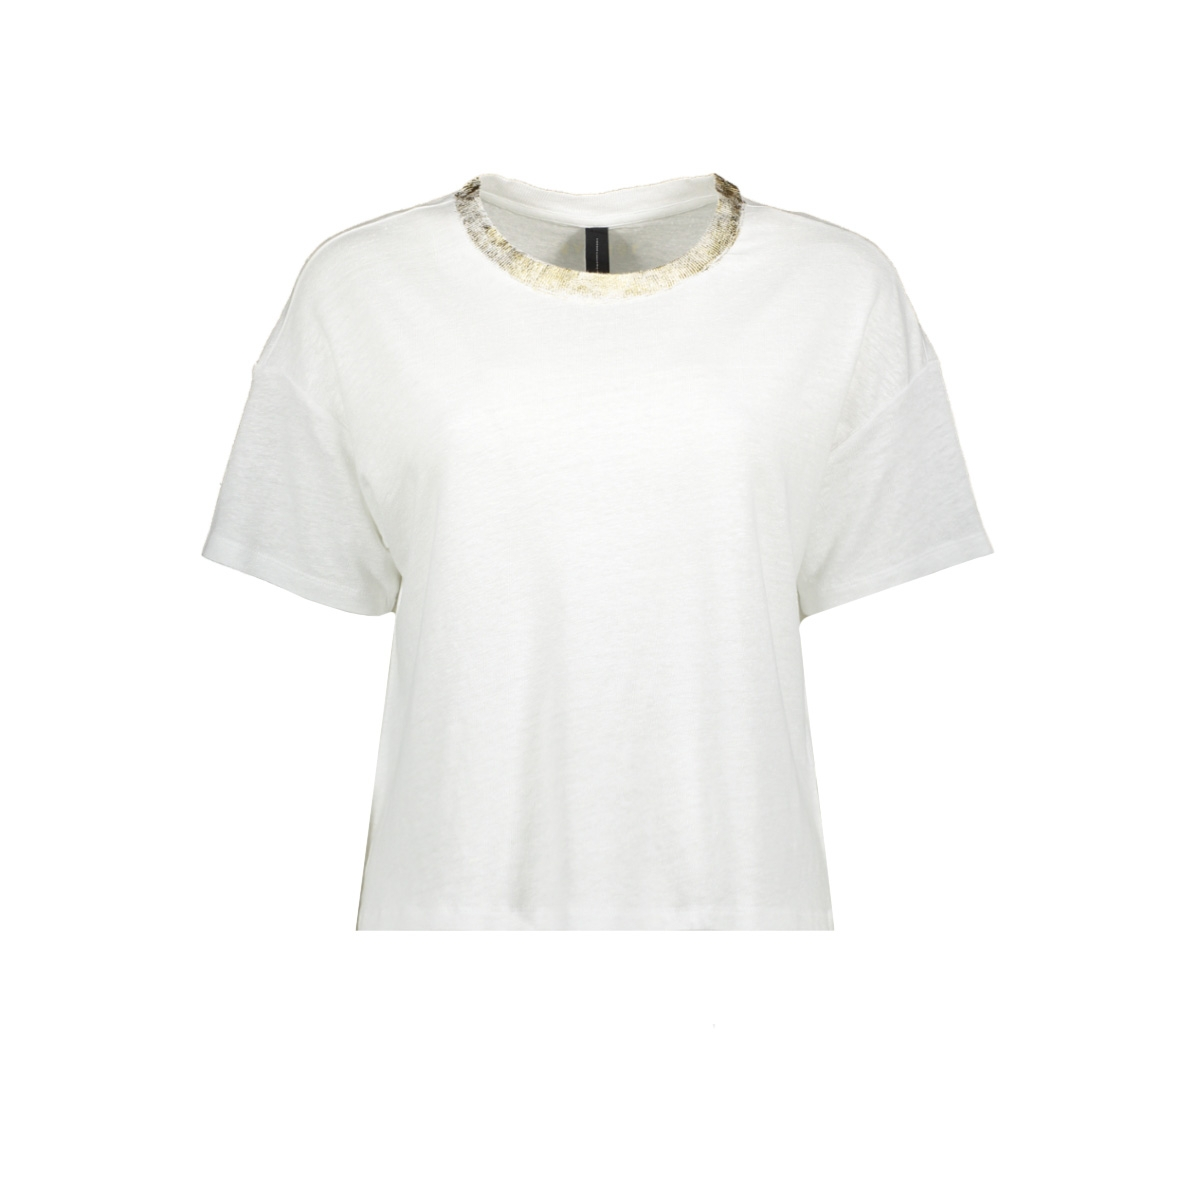 crop tee gold 20 742 0201 10 days t-shirt white